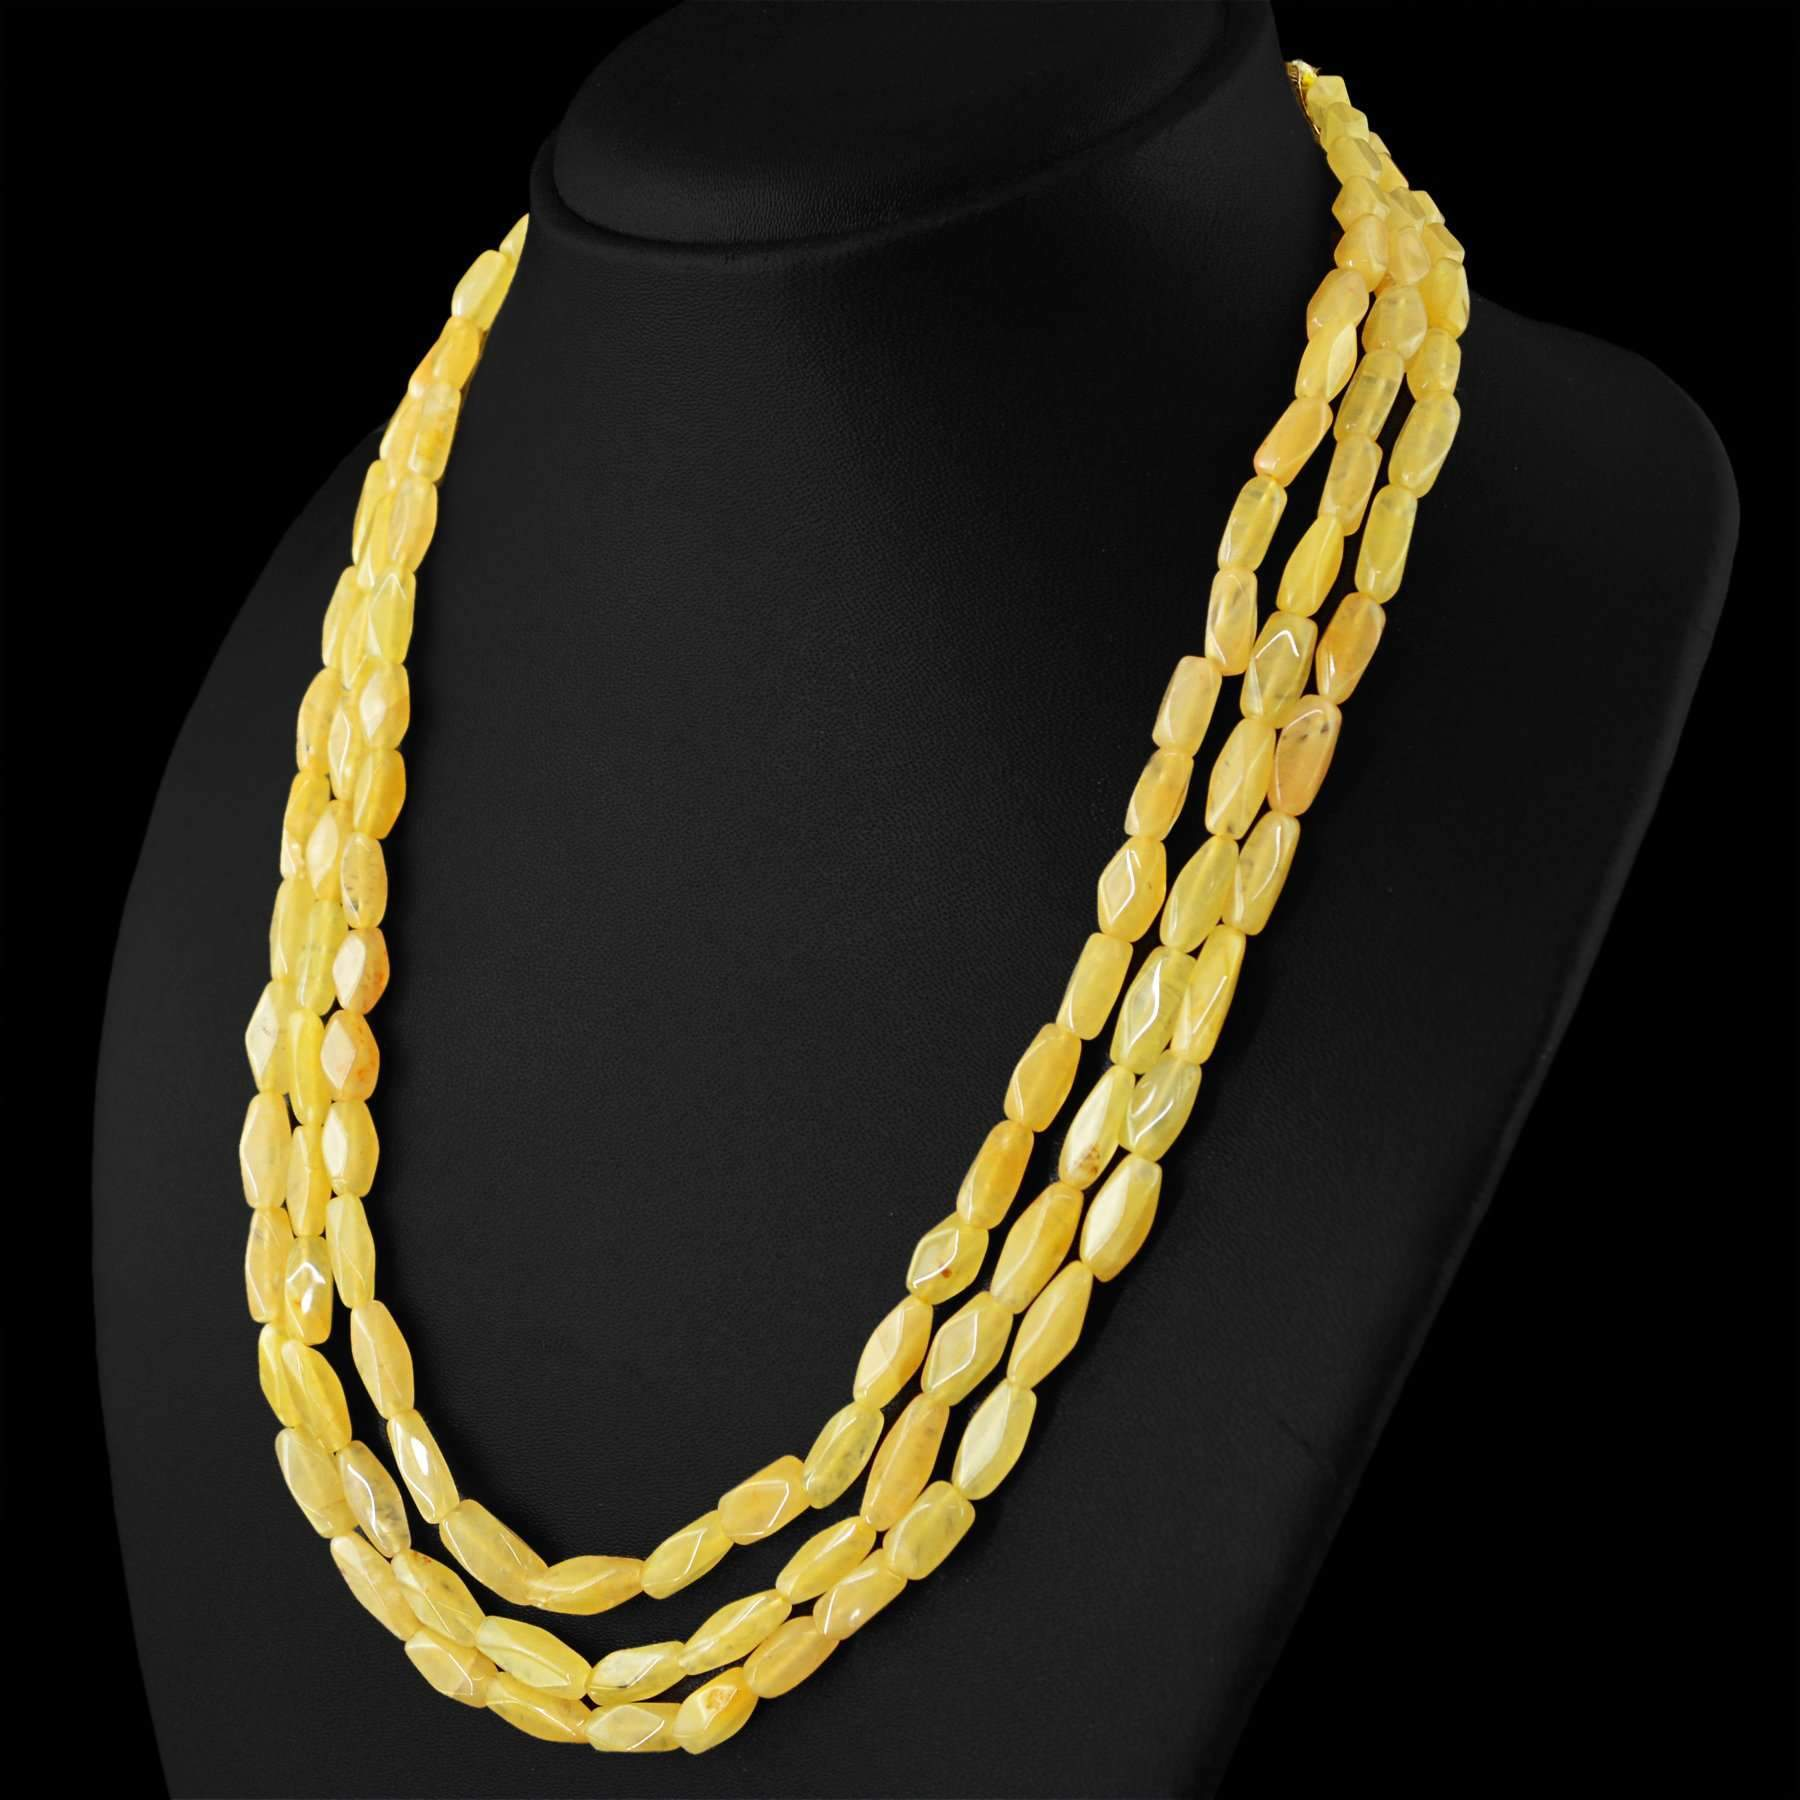 gemsmore:3 Strand Yellow Aventurine Necklace Natural Untreated Faceted Beads